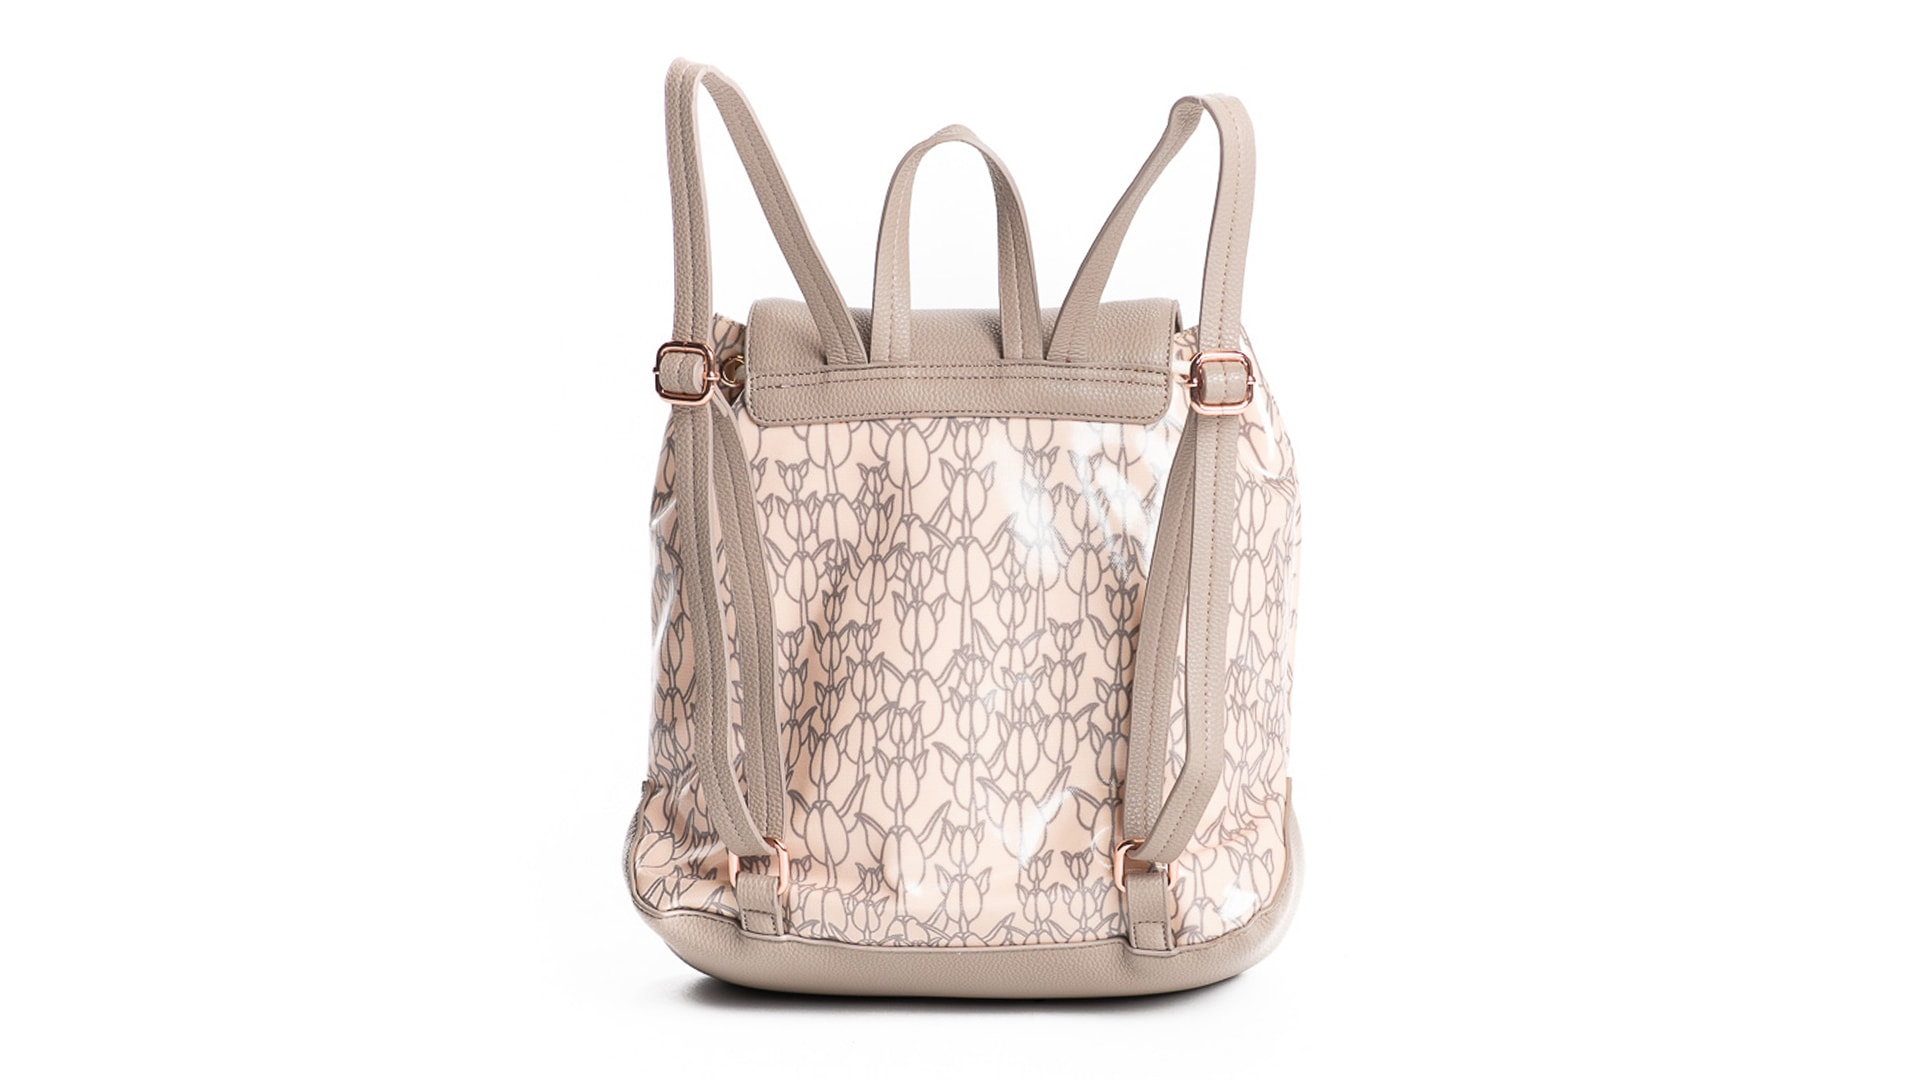 Laulii backpack in Apricot Sherbert/Gingersnap